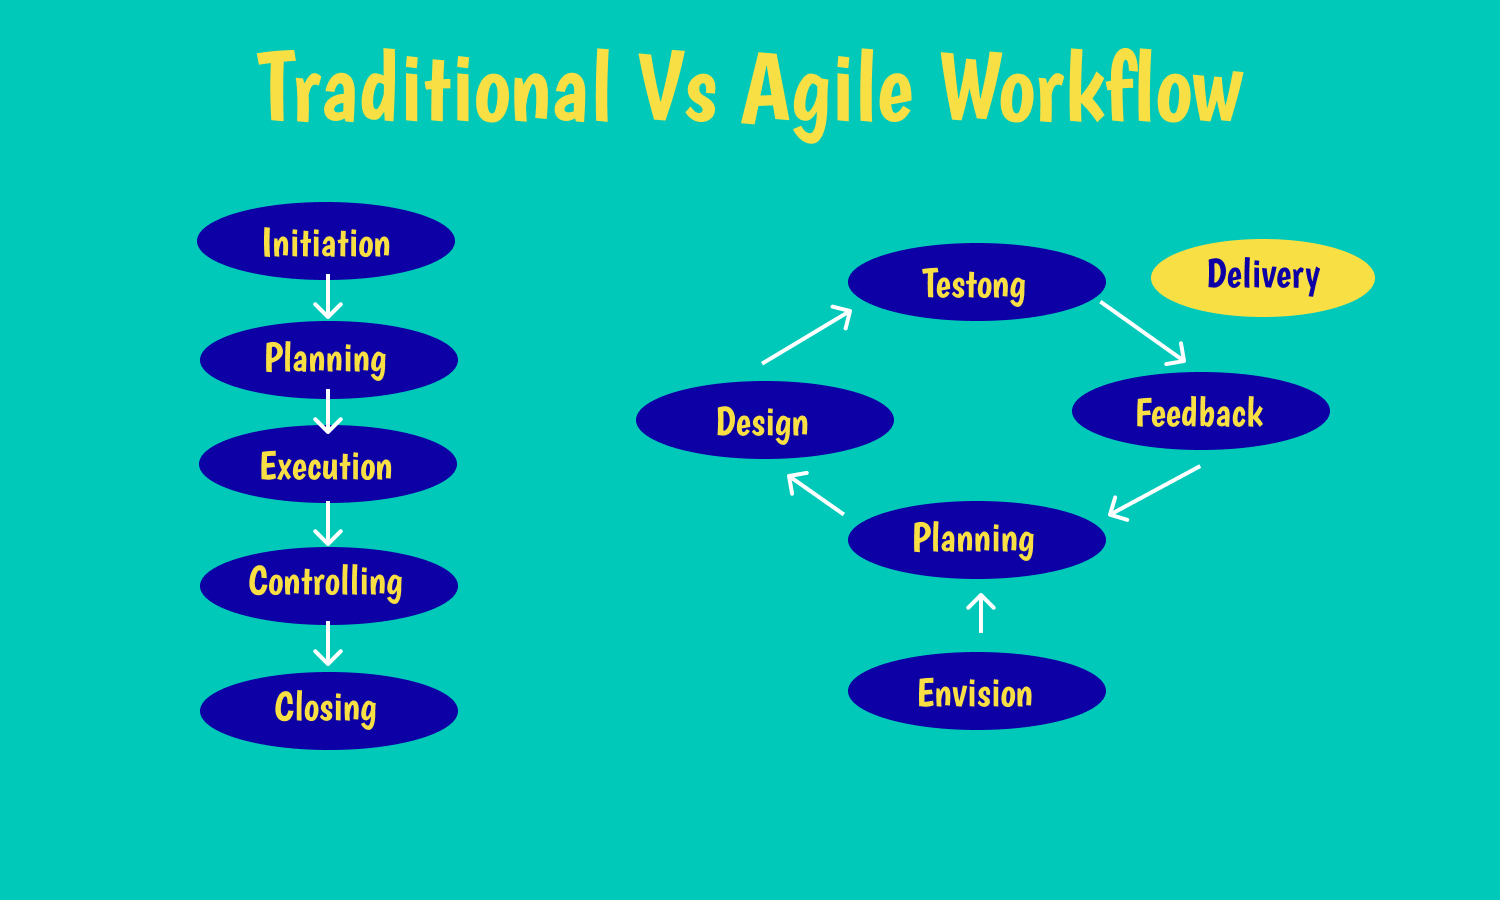 Agile and traditional work flows